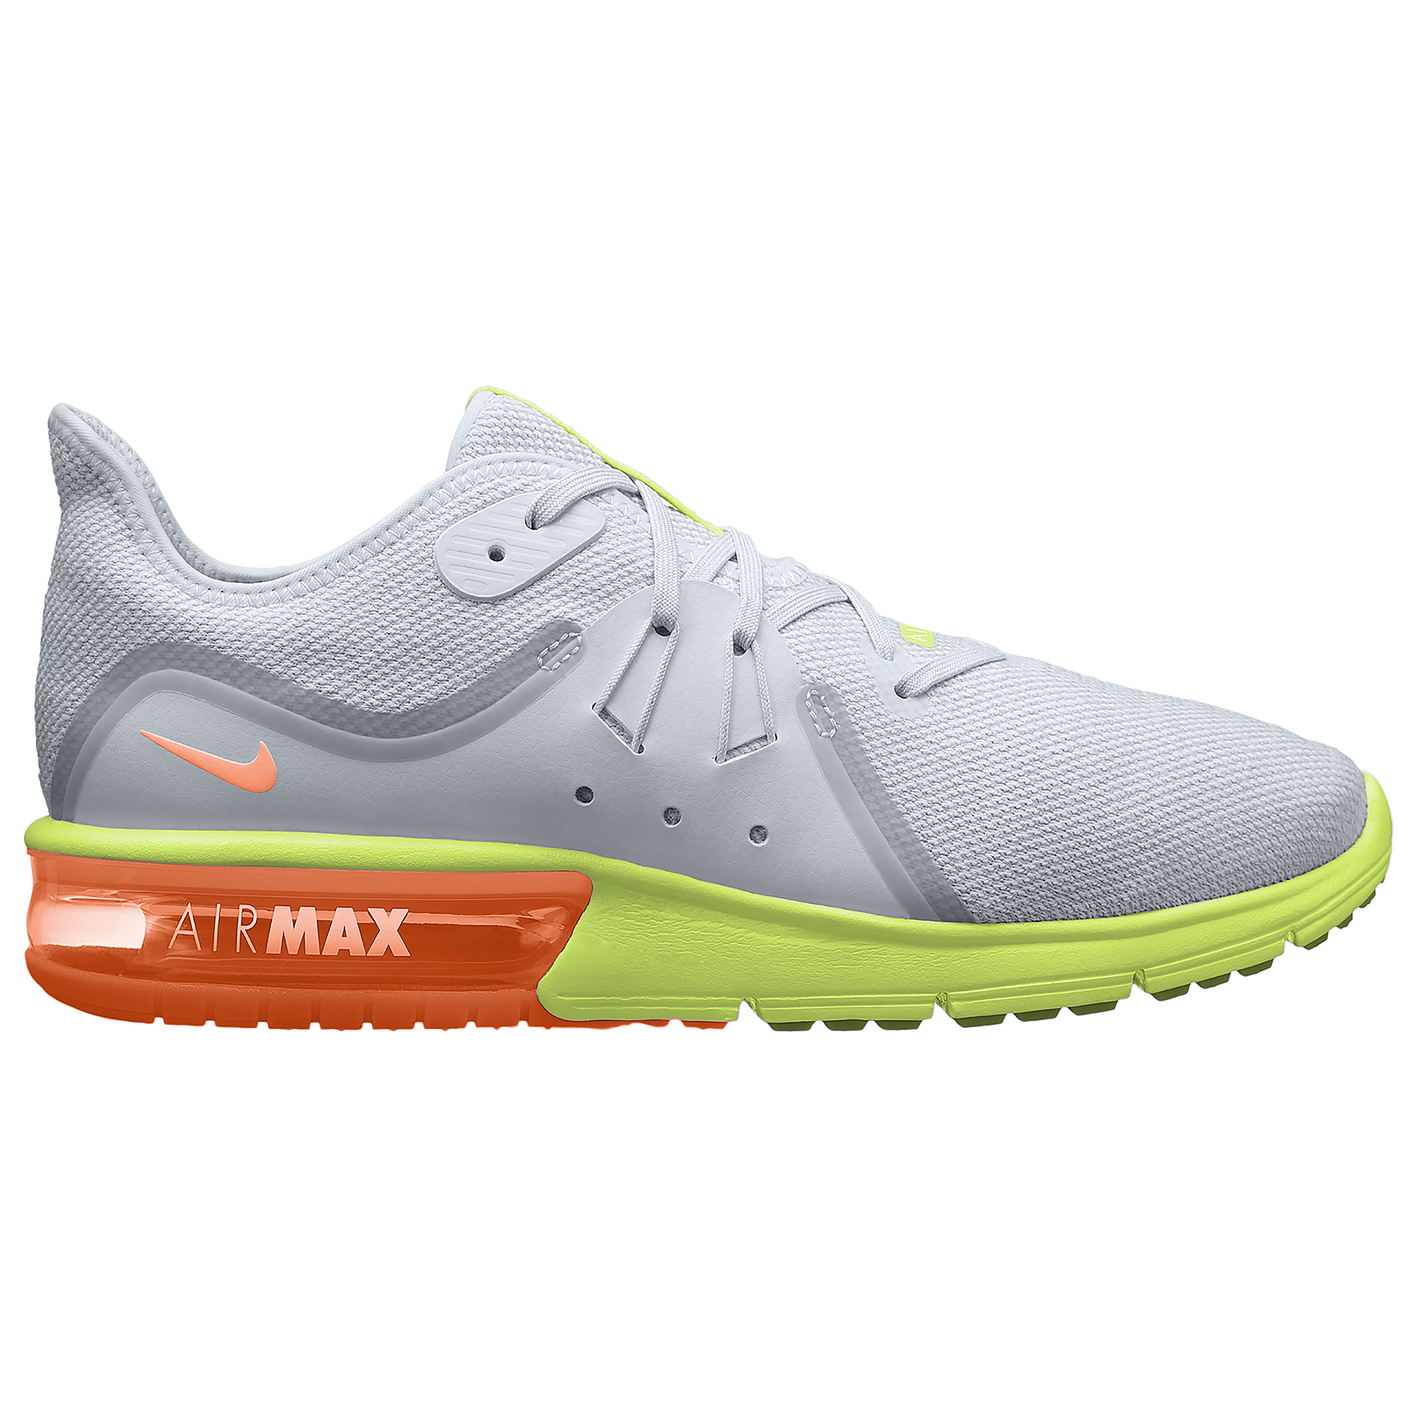 56a33bca517ab7 Nike Air Max Sequent 3 - Men s - Running - Shoes - Grey Orange Green